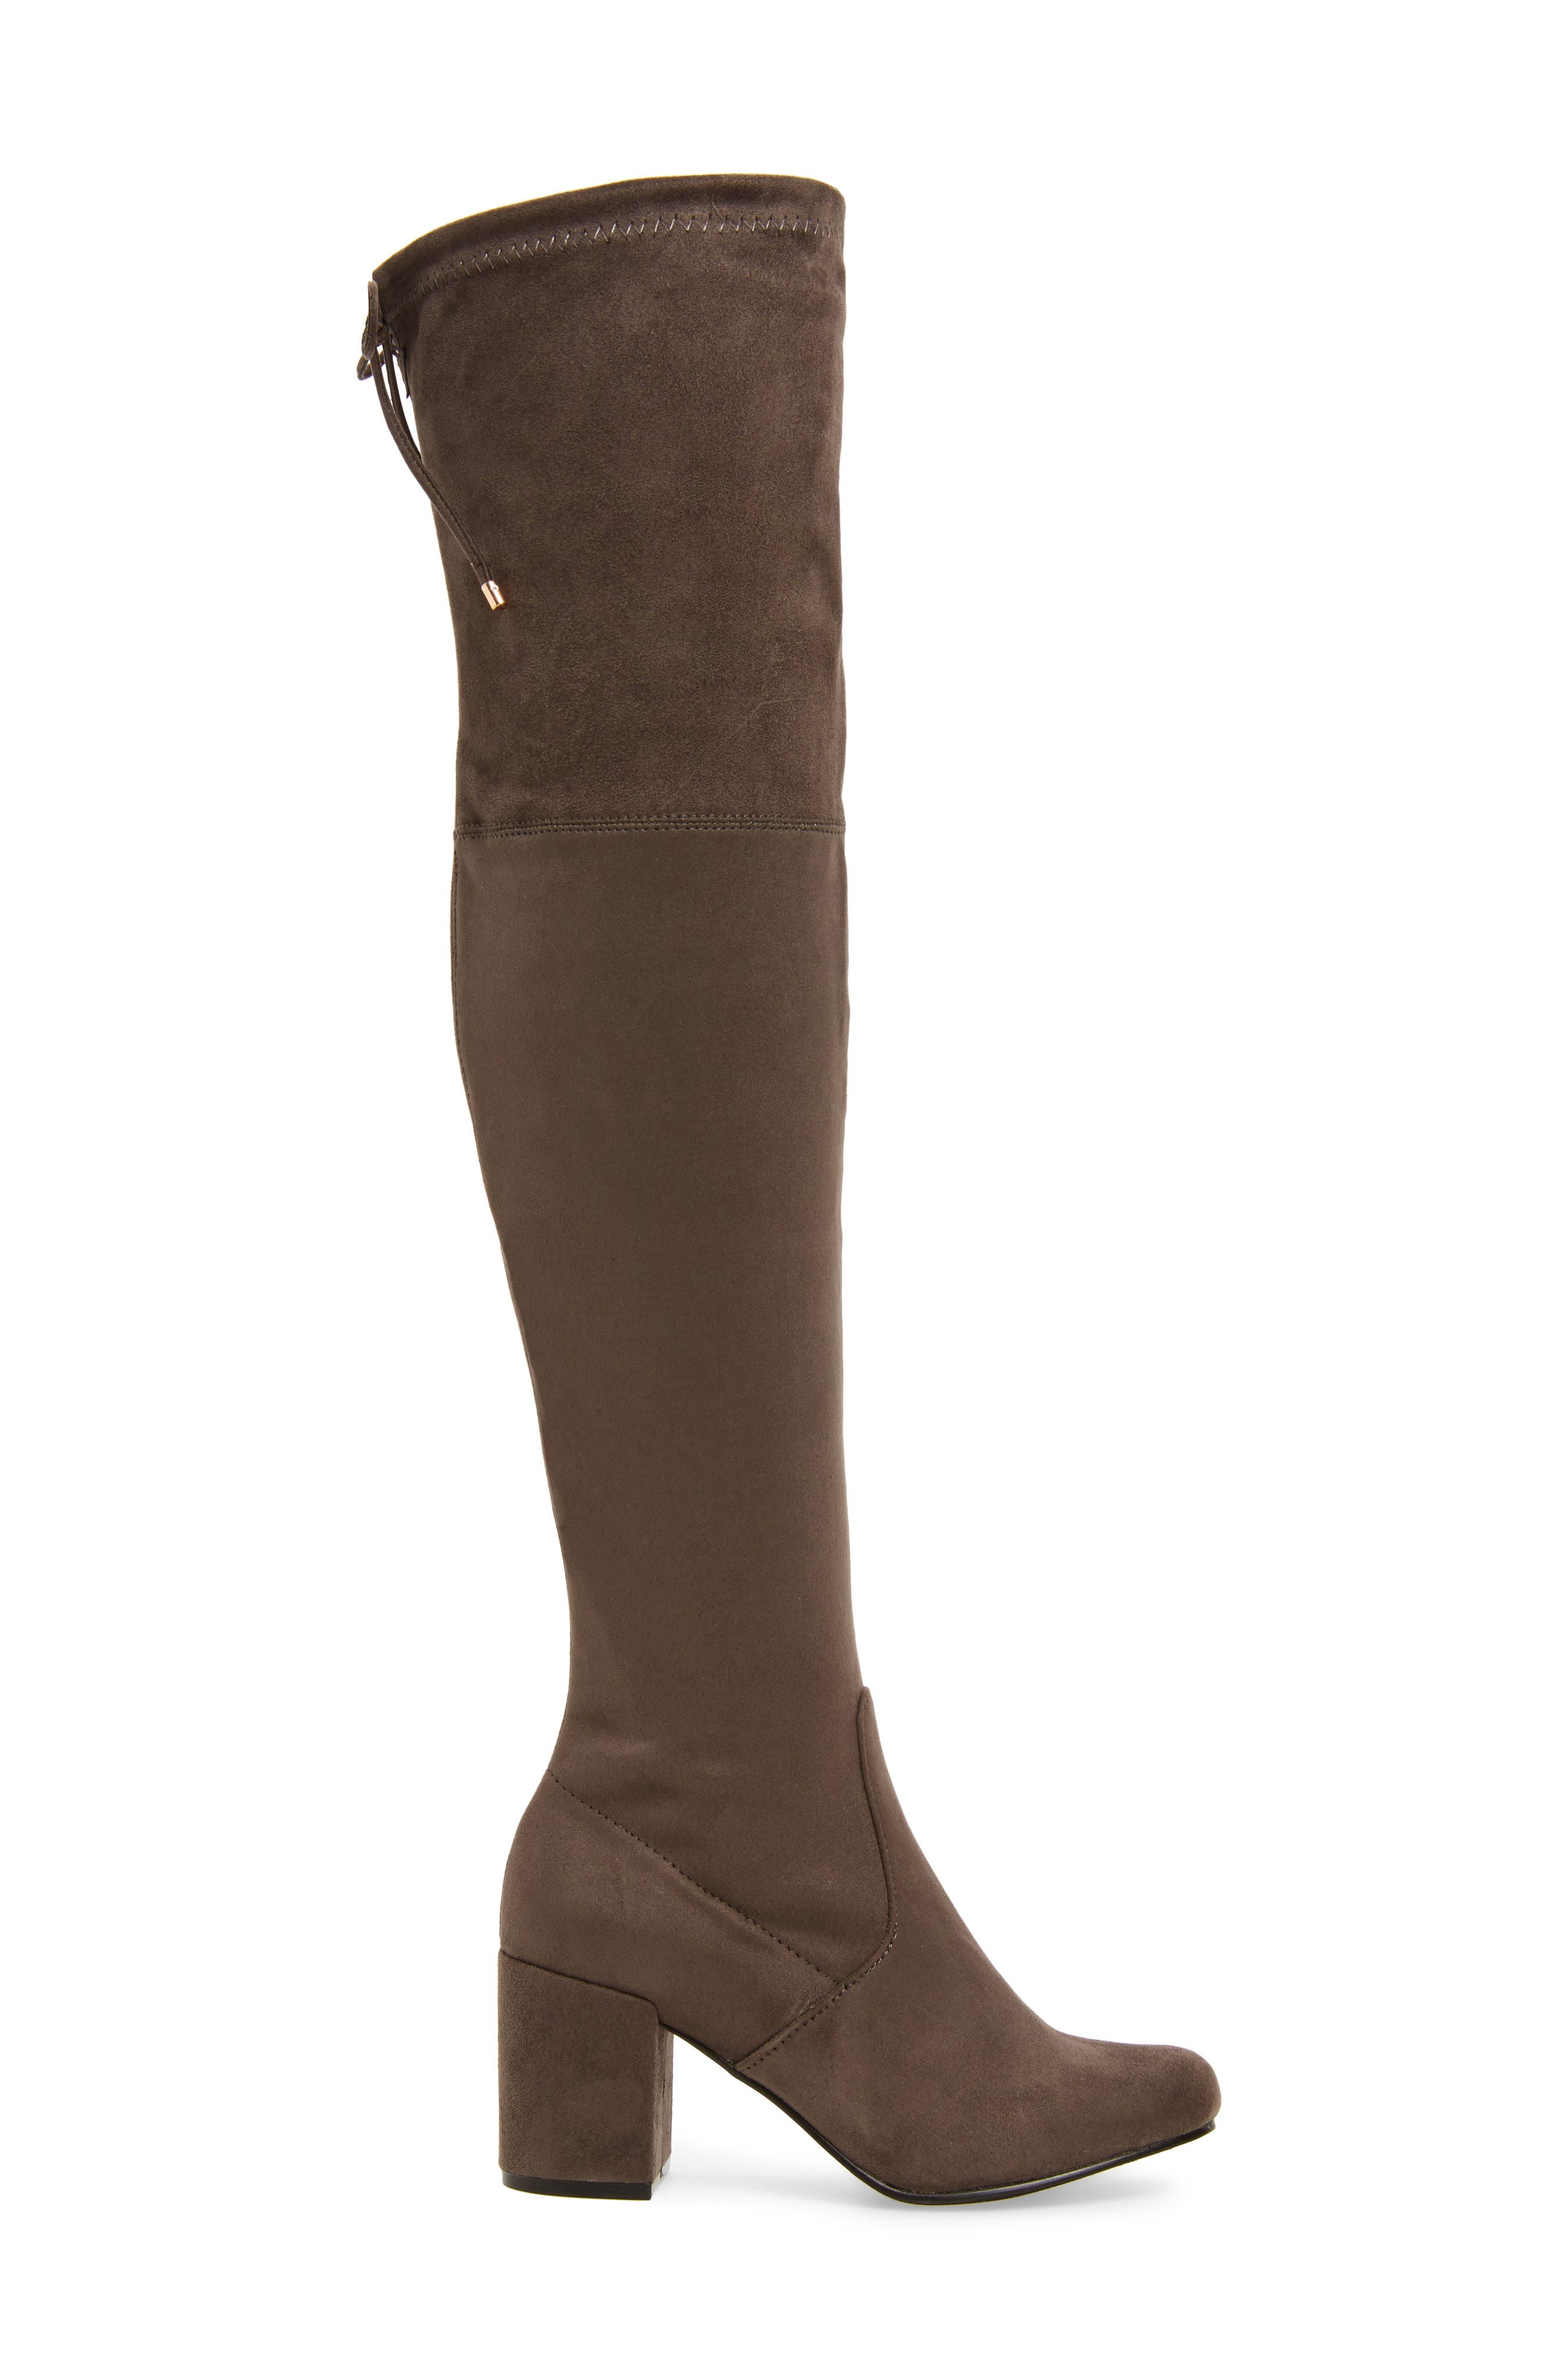 Heartbeat Over the Knee Boot,                             Alternate thumbnail 6, color,